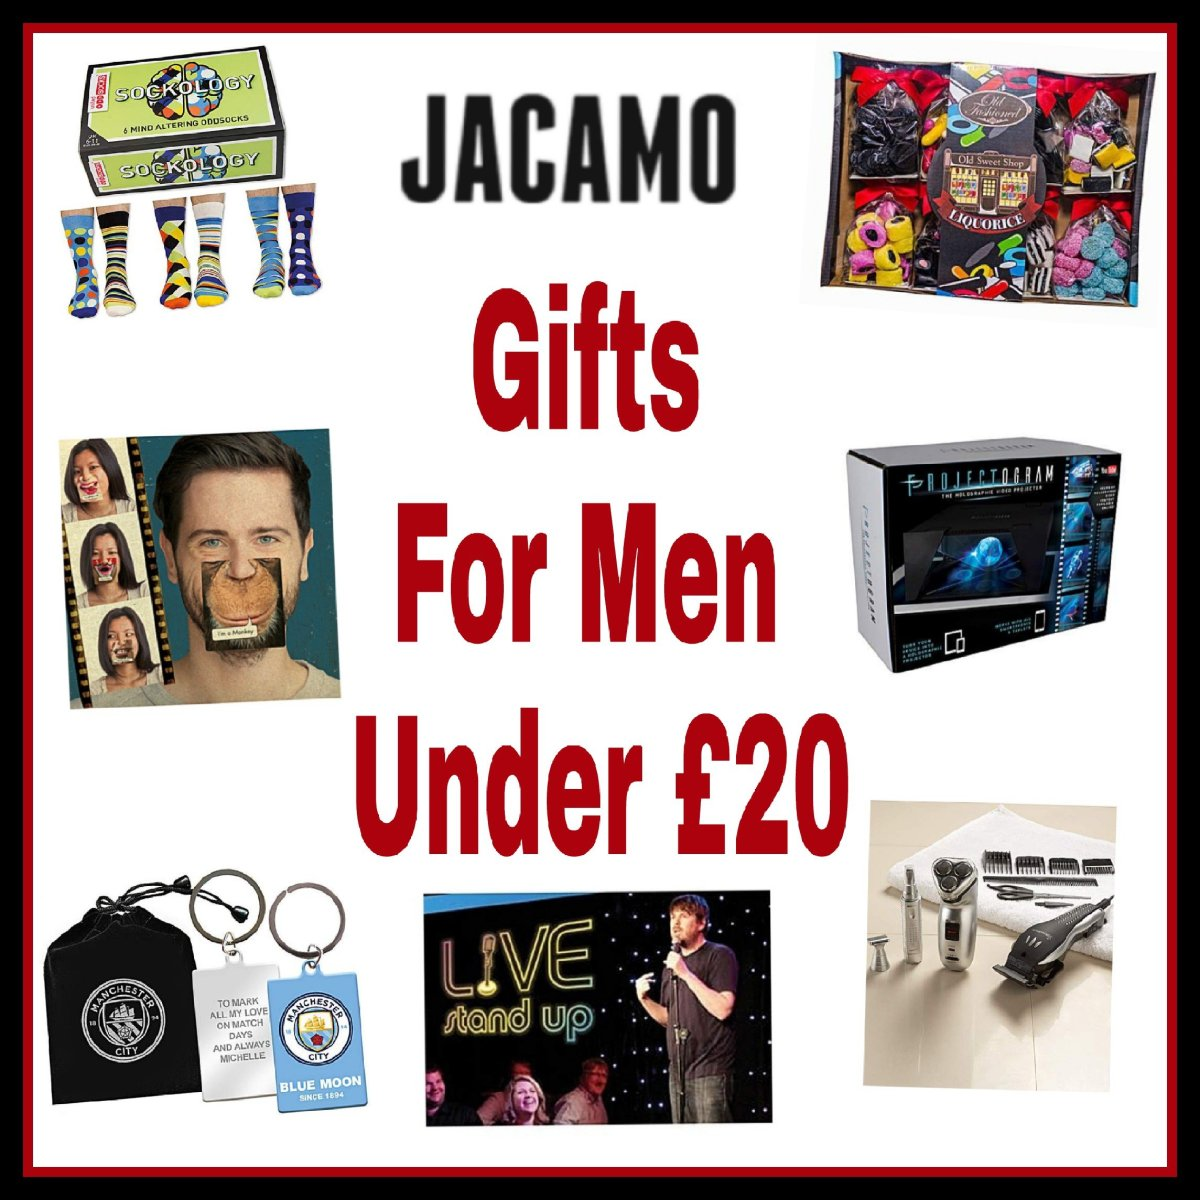 Cool Gifts For Men Under £20 (Gift Guide) - Living Life Our Way